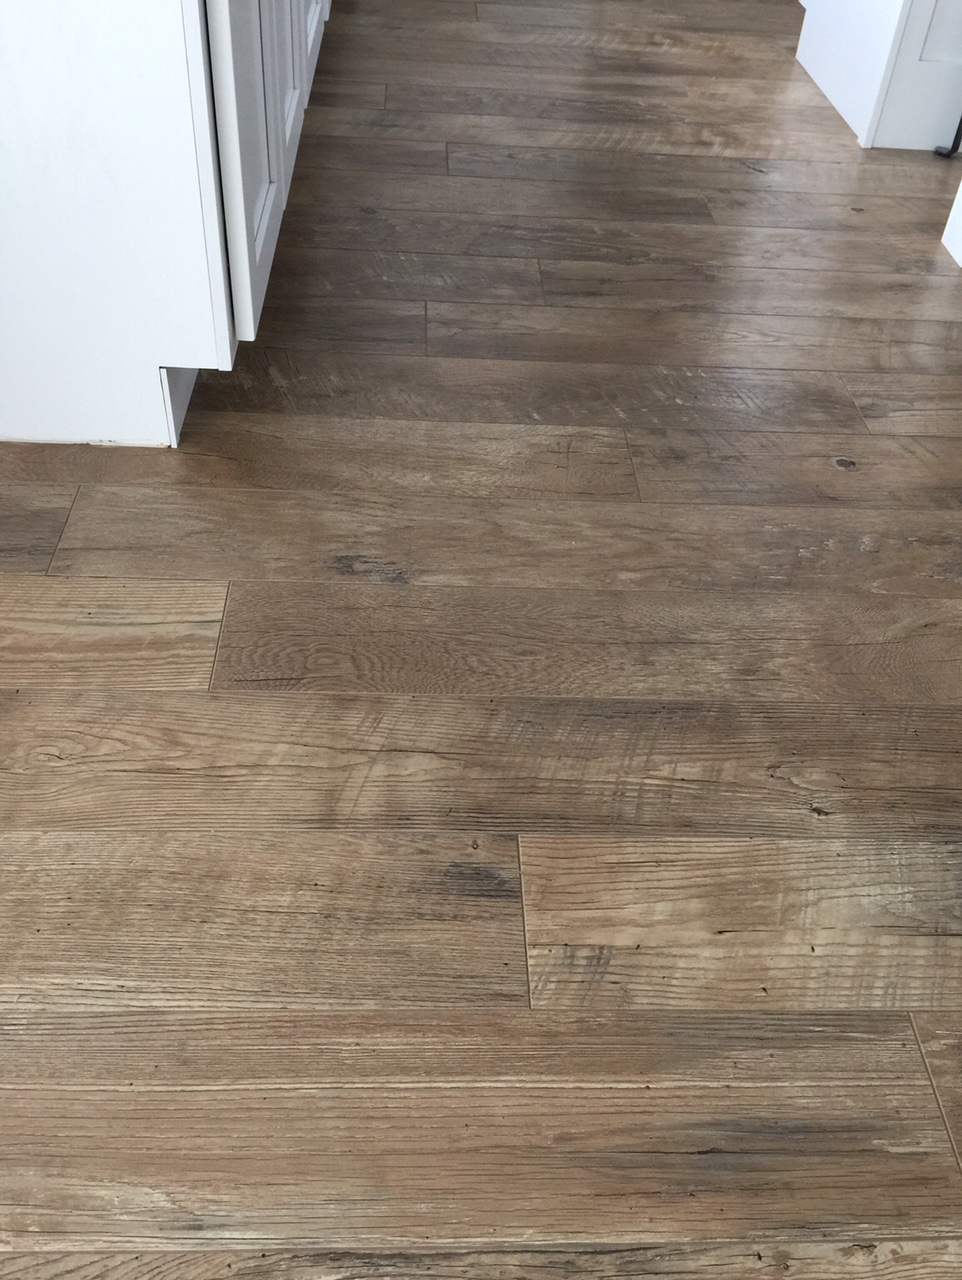 Mannington Laminate Flooring mannington laminate flooring at huge savings order today This Picture Was Taken After I Dust Moppedvacuumed But Nothing Elsehavent Mopped This In At Least A Month